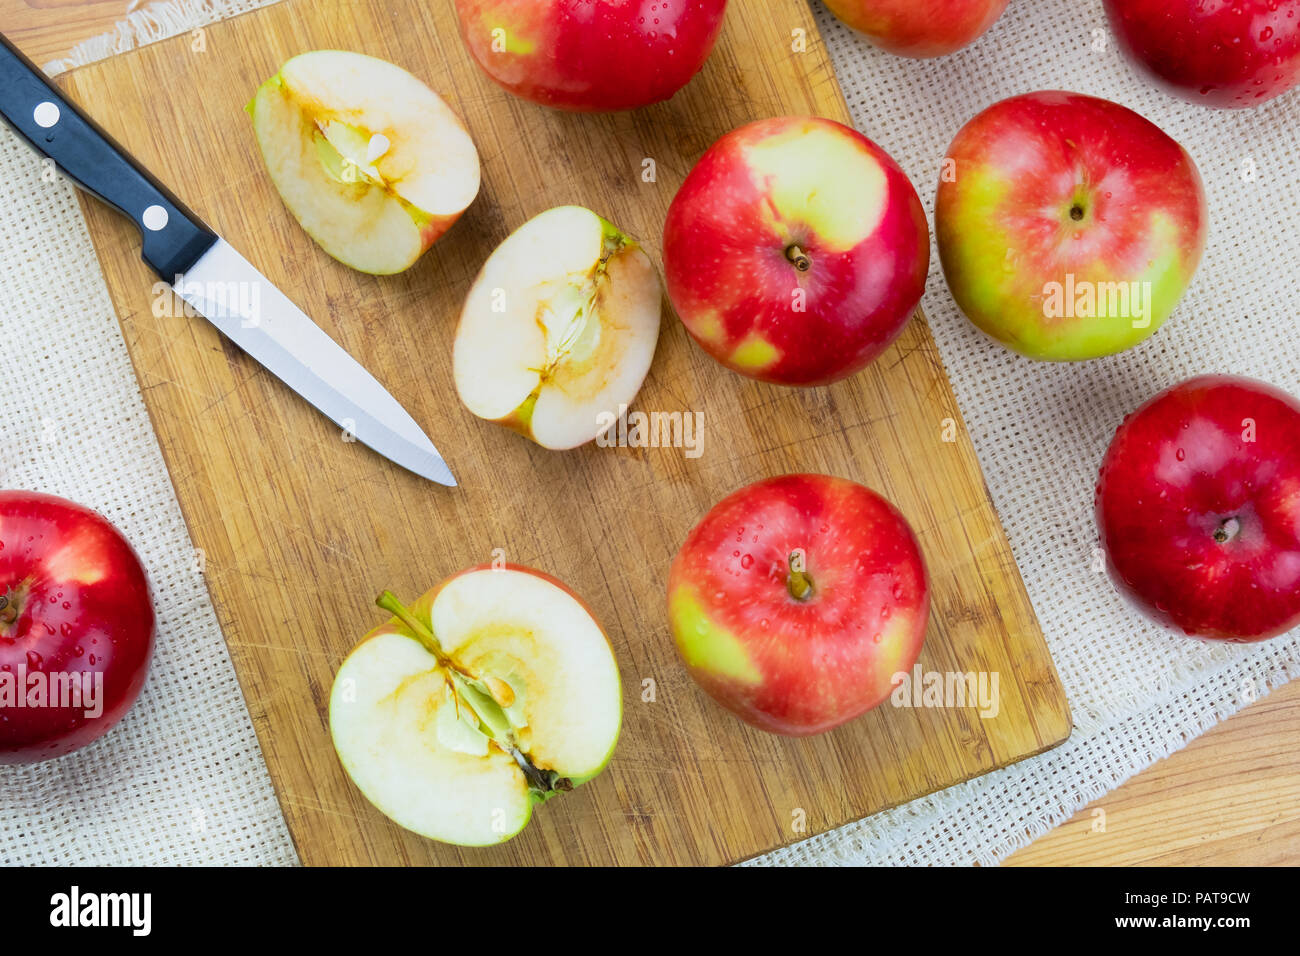 Top view of ripe juicy apples on rustic wooden table. Home grown organic apples and knife, shot from above - Stock Image